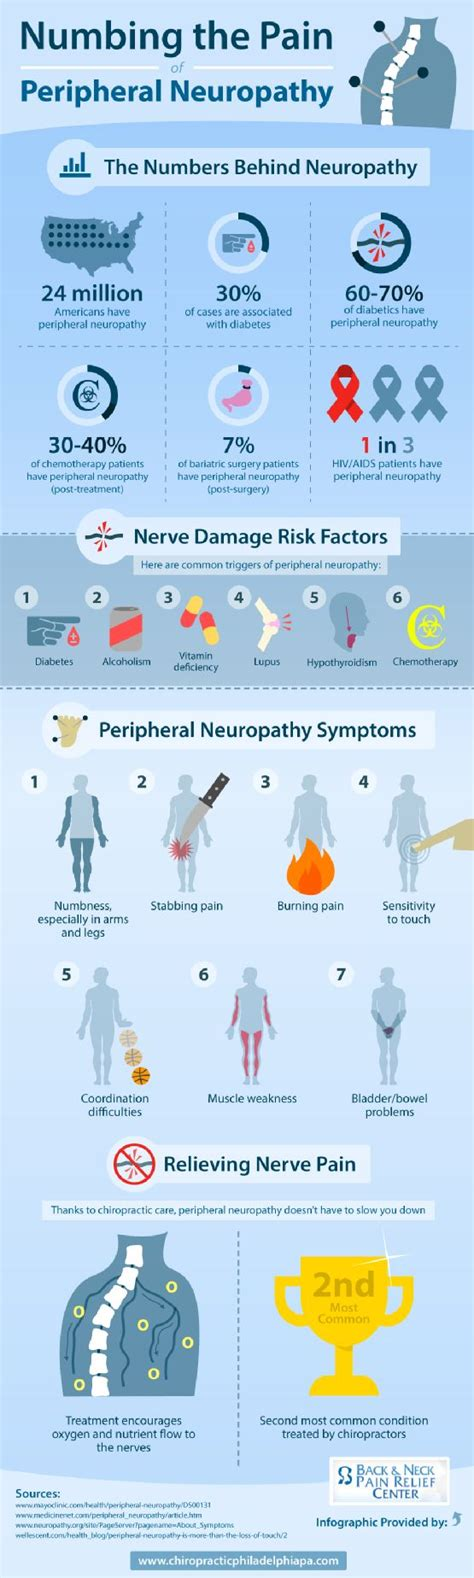 17 Best Images About Peripheral Neuropathyparesthesia On. Top Rated Heating And Air Conditioning Systems. New York Real Estate Transactions. Down Town Dubai Hotel Apartment. Companies That Ship Furniture. Long Island Breast Cancer Gym Wipe Dispensers. Unoccupied House Insurance Dentist In Durham. Bosley Hair Transplant Complaints. Balancetransfer Searscard Com